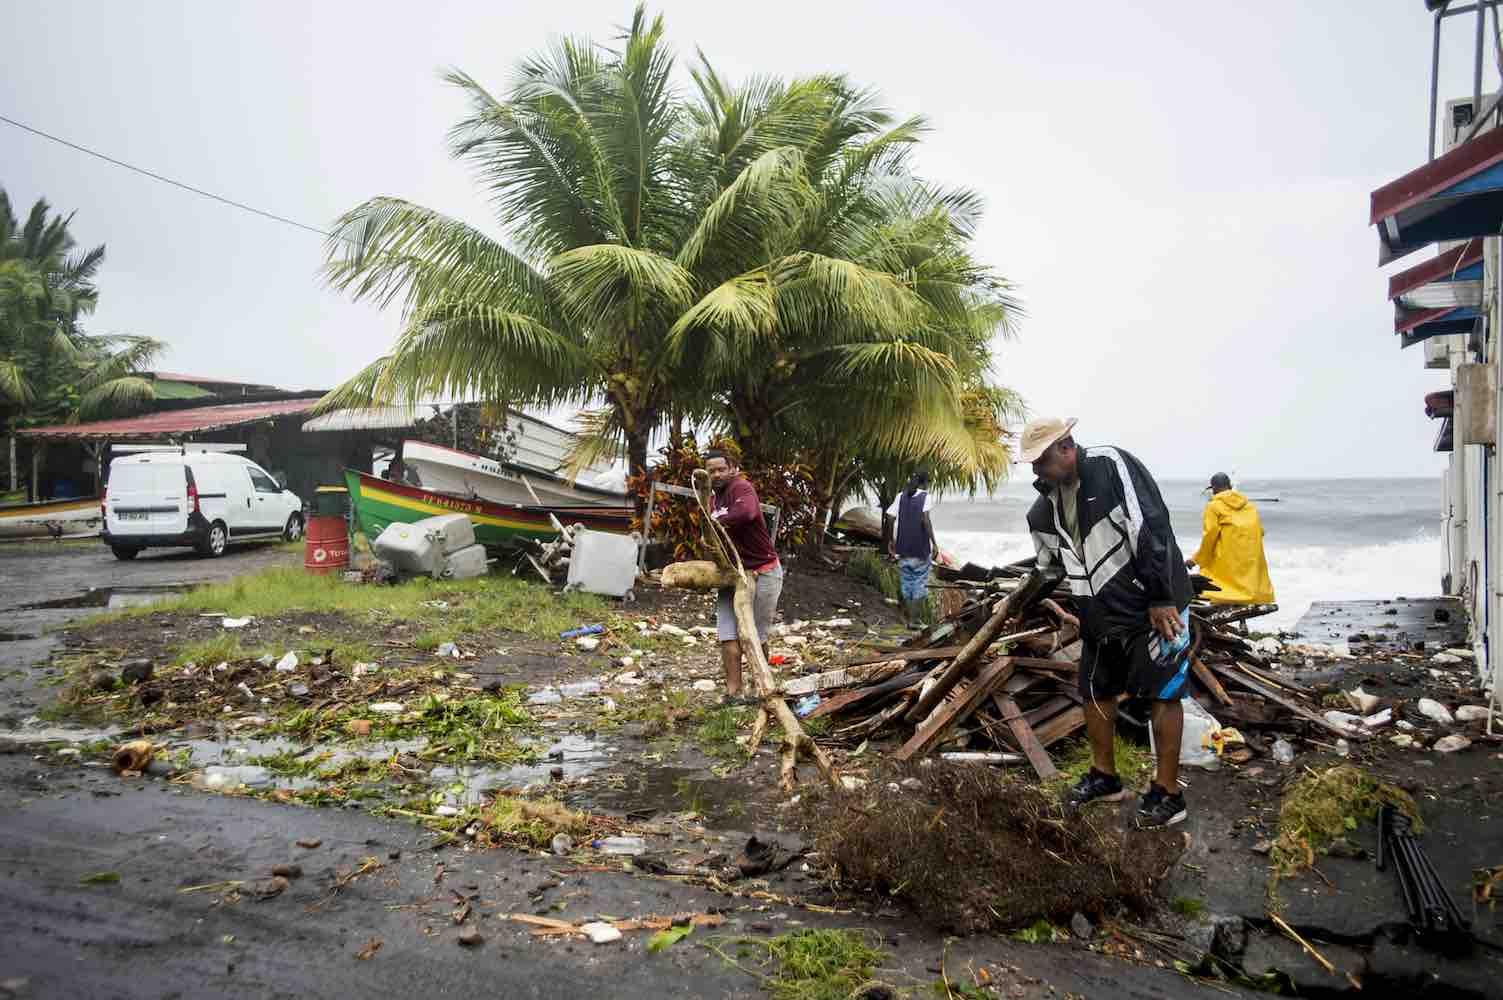 <div class='meta'><div class='origin-logo' data-origin='Creative Content'></div><span class='caption-text' data-credit='LIONEL CHAMOISEAU/AFP/Getty'>People clear debris in Saint-Pierre, on the French Caribbean island of Martinique, after it was hit by Hurricane Maria, on September 19, 2017.</span></div>